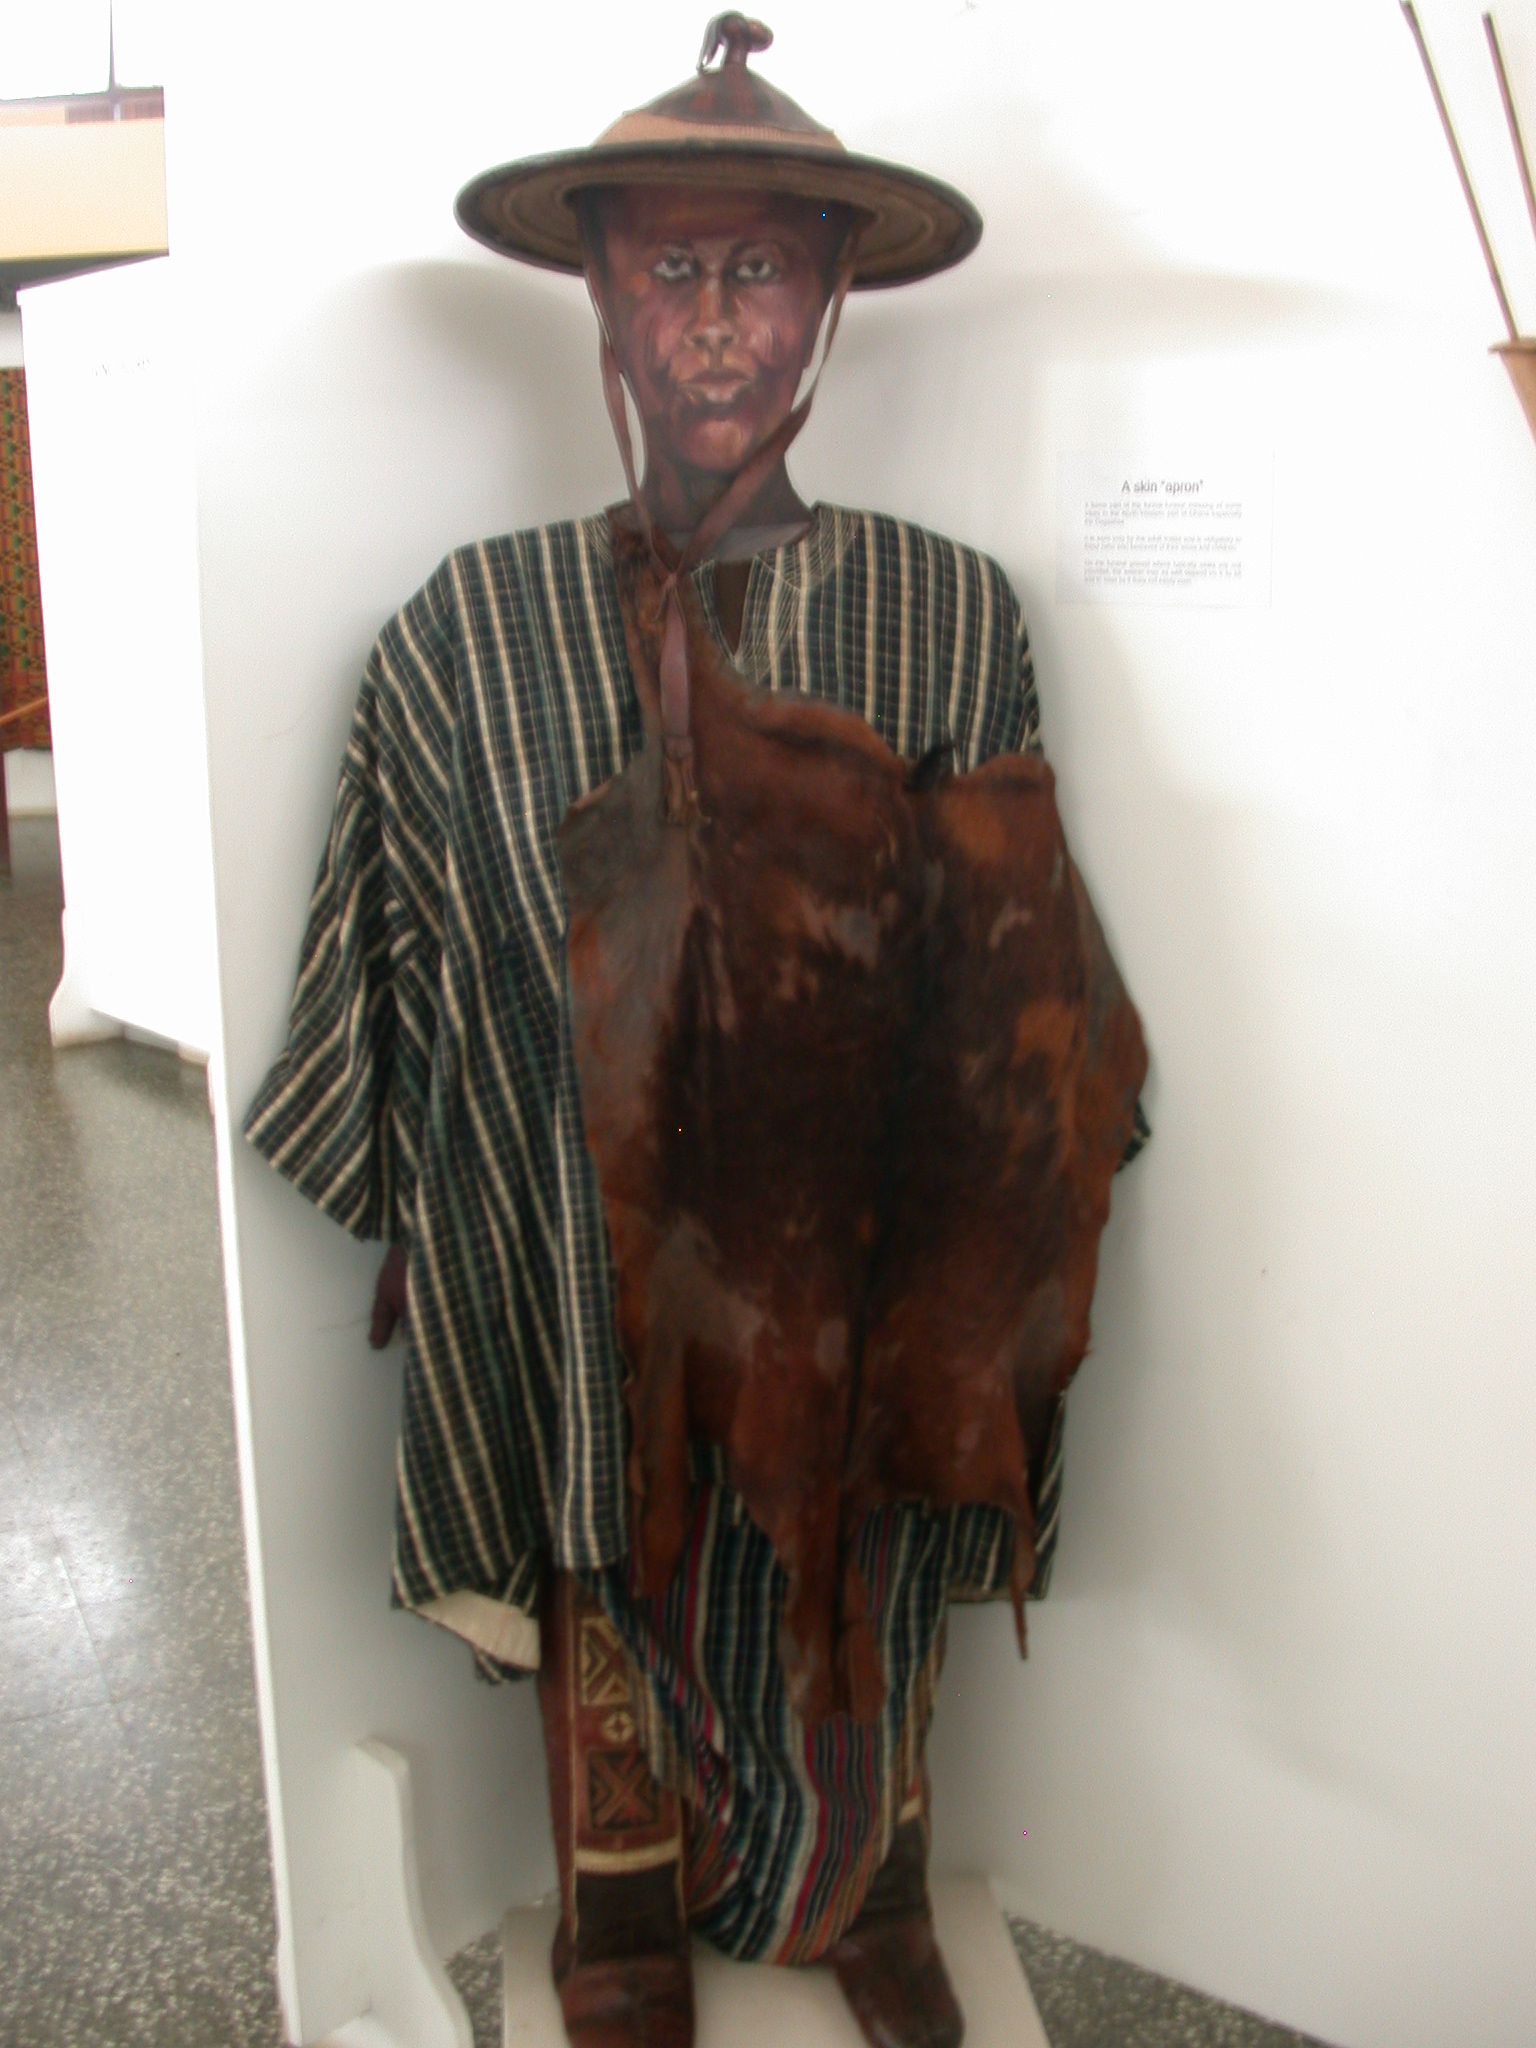 A Skin Apron, National Museum, Accra, Ghana